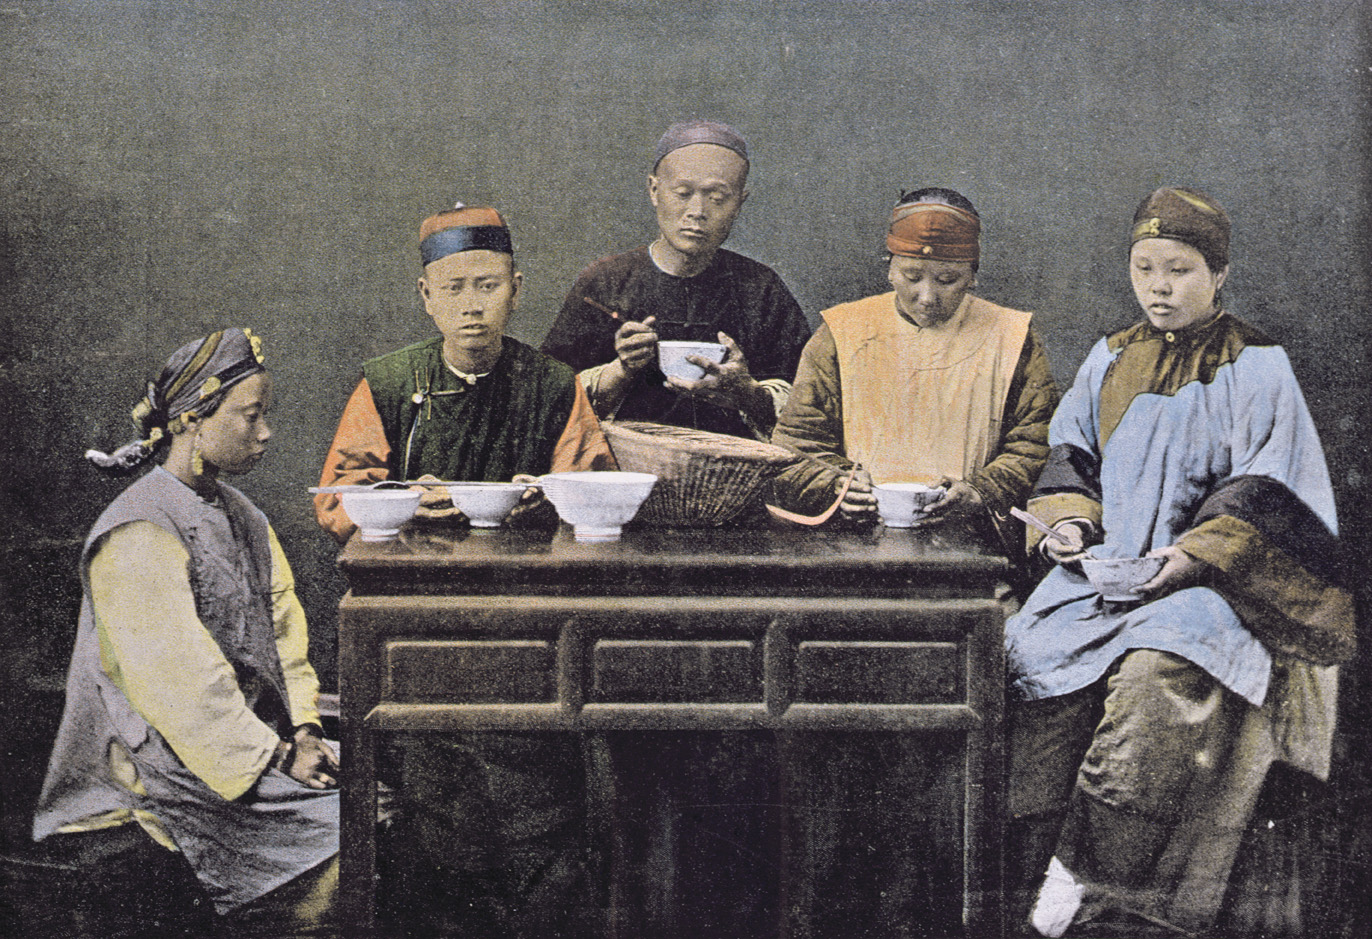 Family having a meal, China, c. 1900